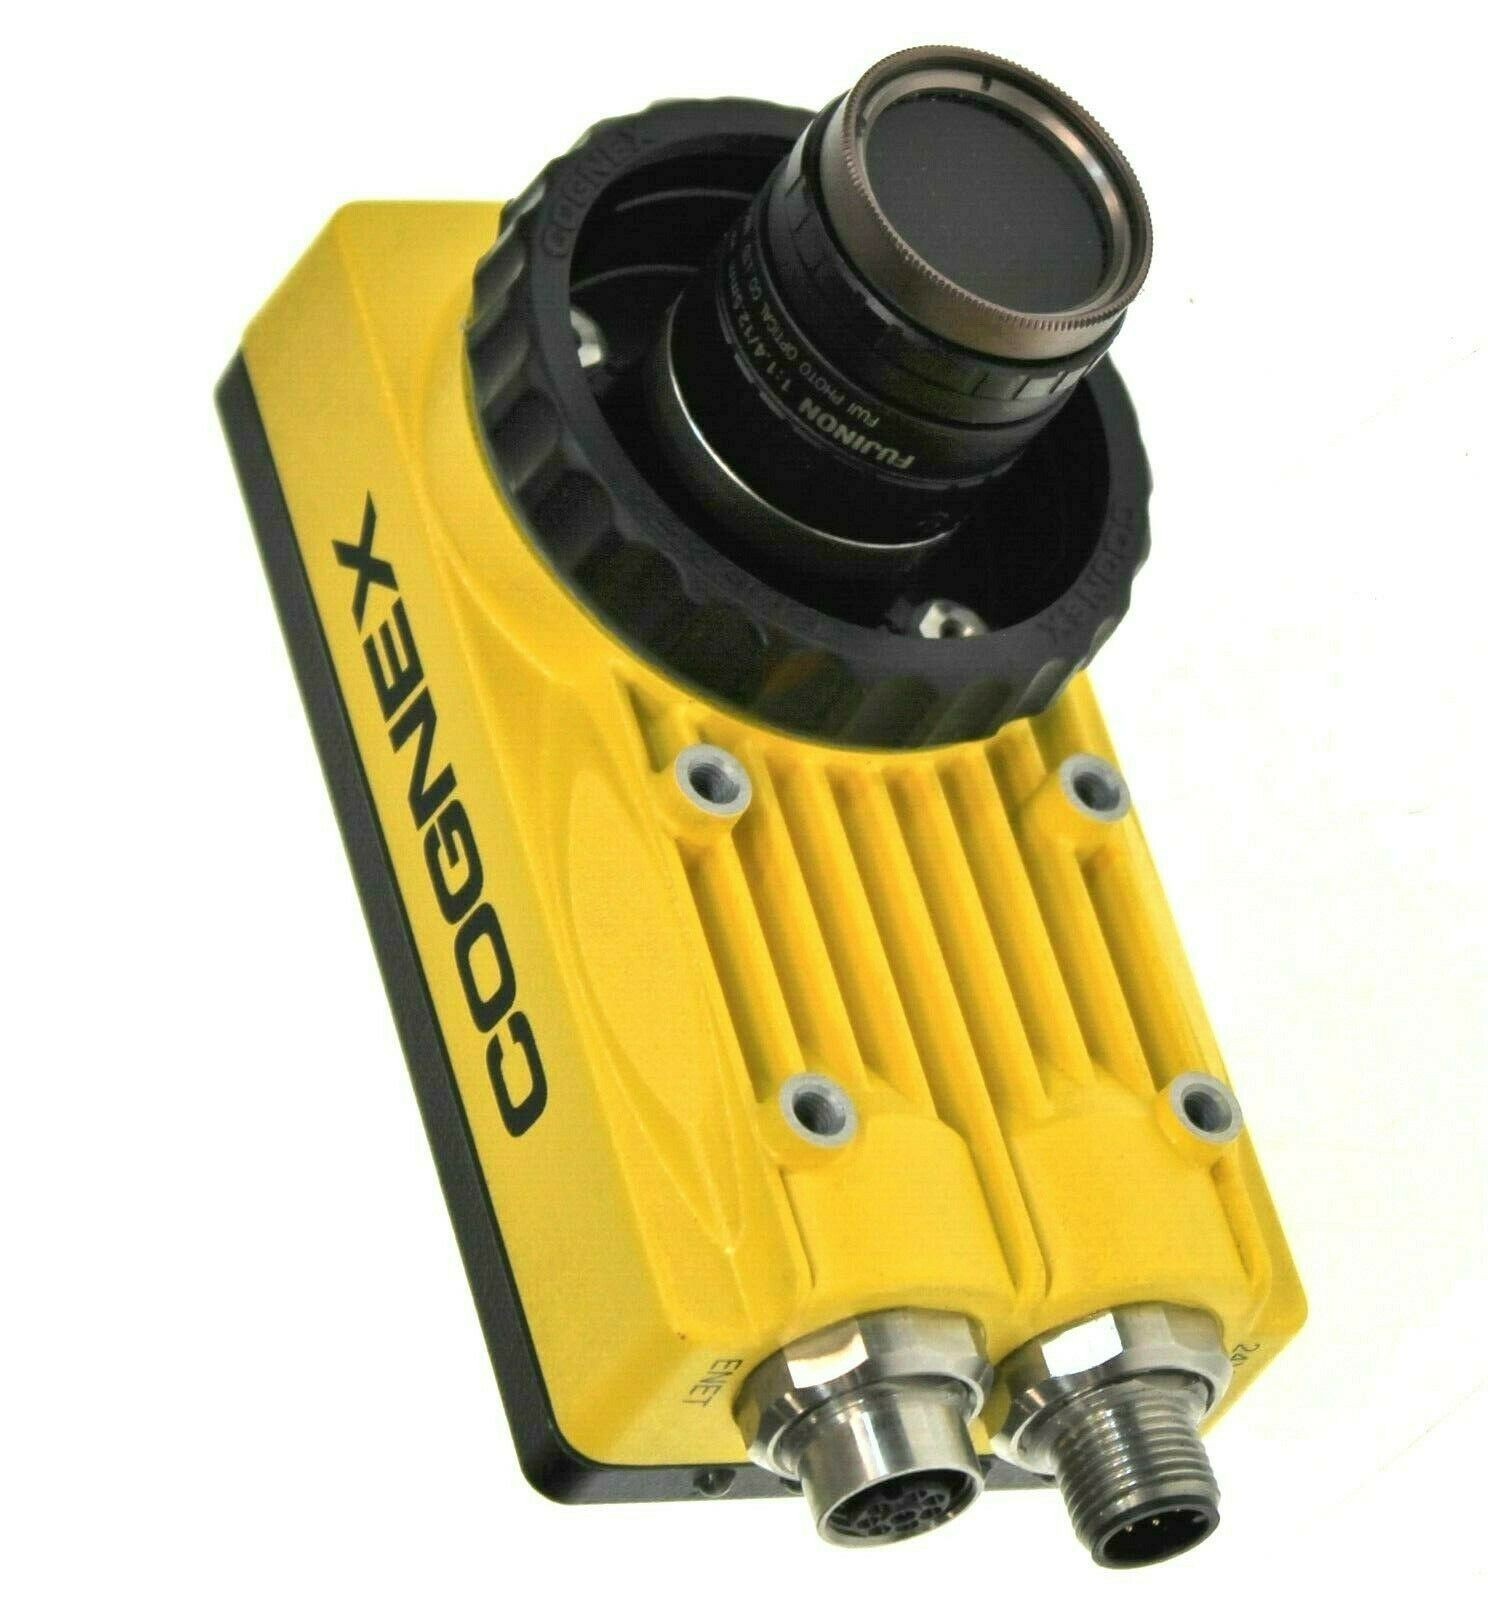 Cognex IS5400-01 InSight Vision System w/ Fujinon Lens 1:1.4/12.5mm